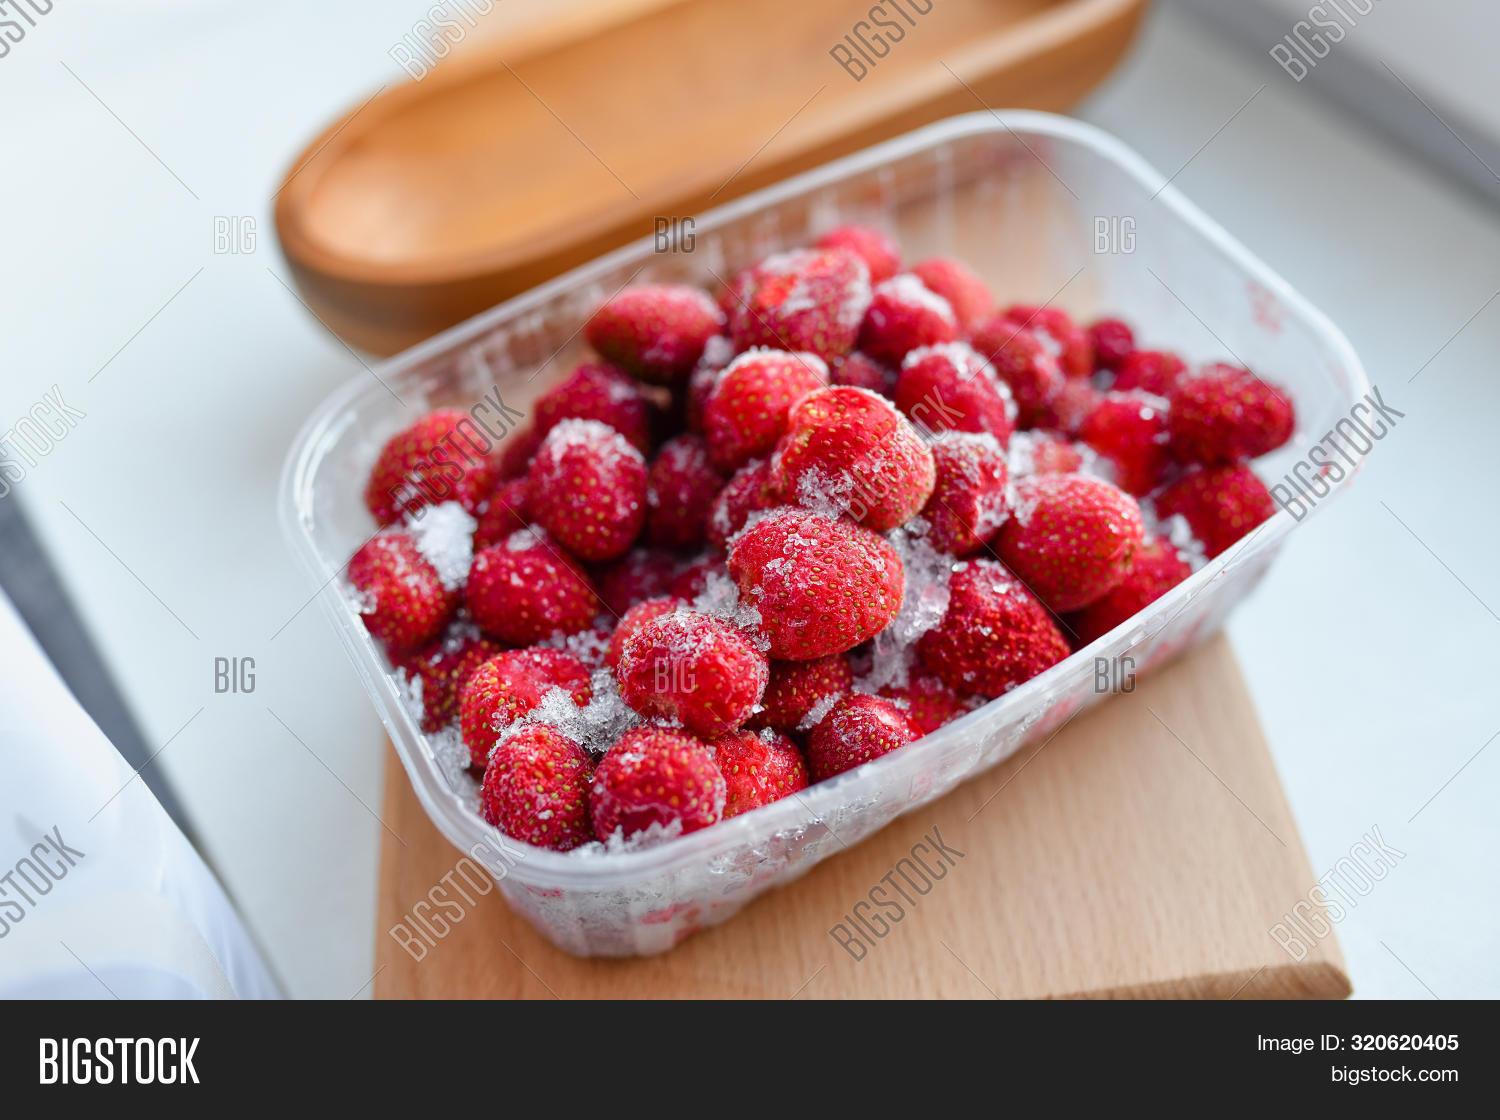 appliance,assortment,background,berry,bilberry,black,blackberry,blue,blueberry,bowl,box,brambleberry,broccoli,closeup,cold,collection,container,cool,cranberry,crystal,currant,different,dish,eating,electrical,food,freezer,freezing,frozen,fruit,group,indoor,mixed,mixture,open,opened,preserve,products,raspberry,still,still-life,storage,strawberry,up,variation,variety,various,white